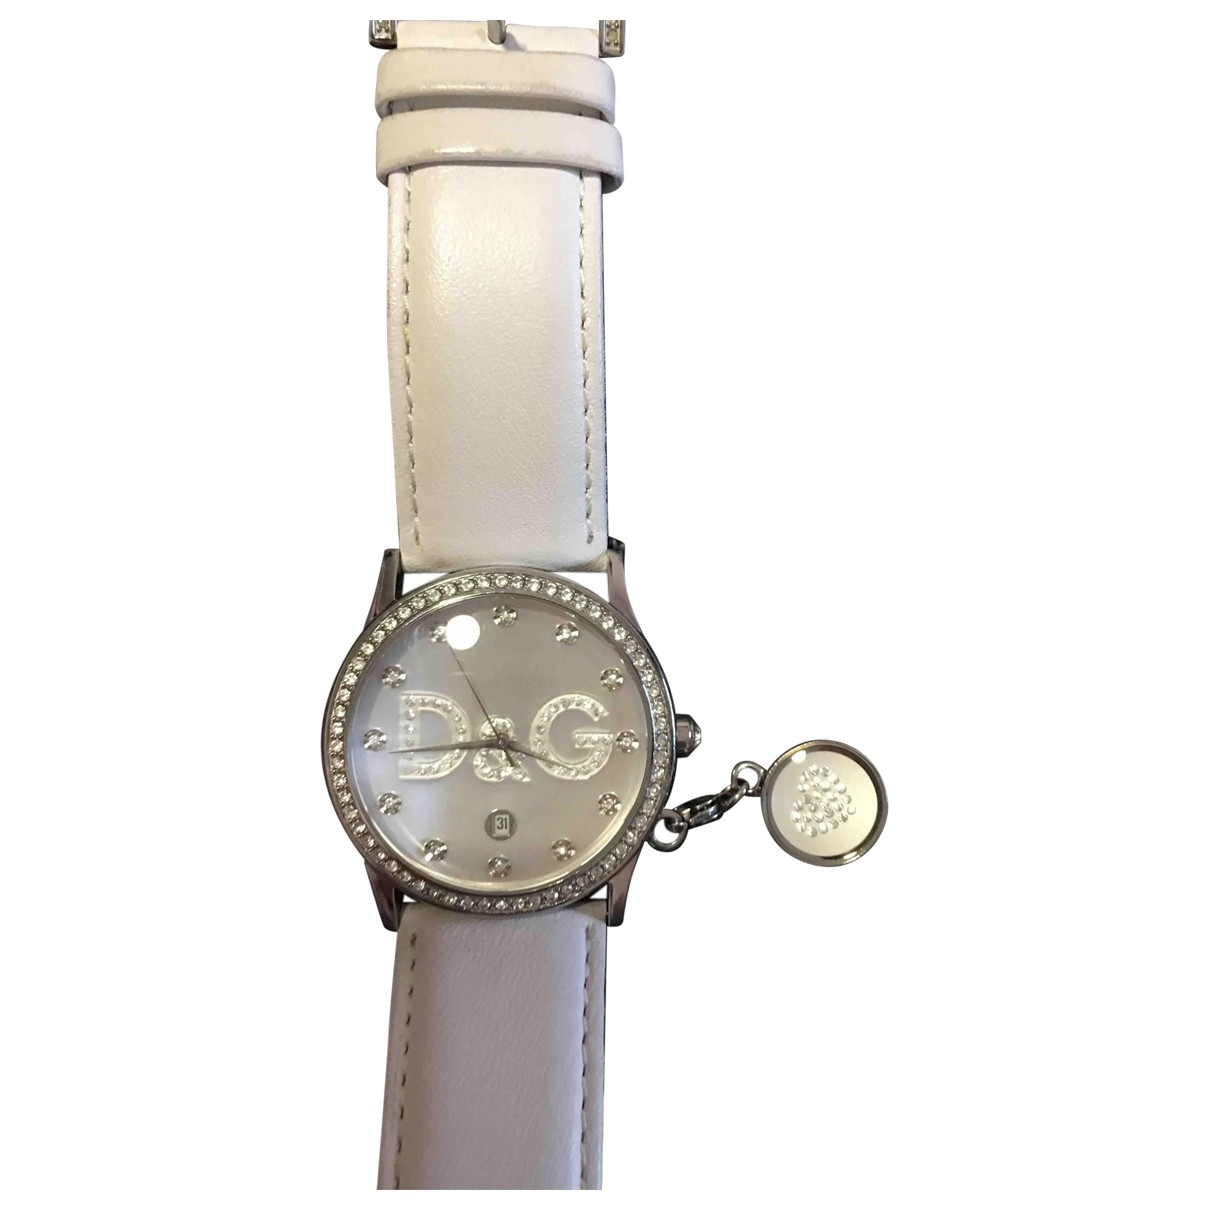 D&g \N White Steel watch for Women \N